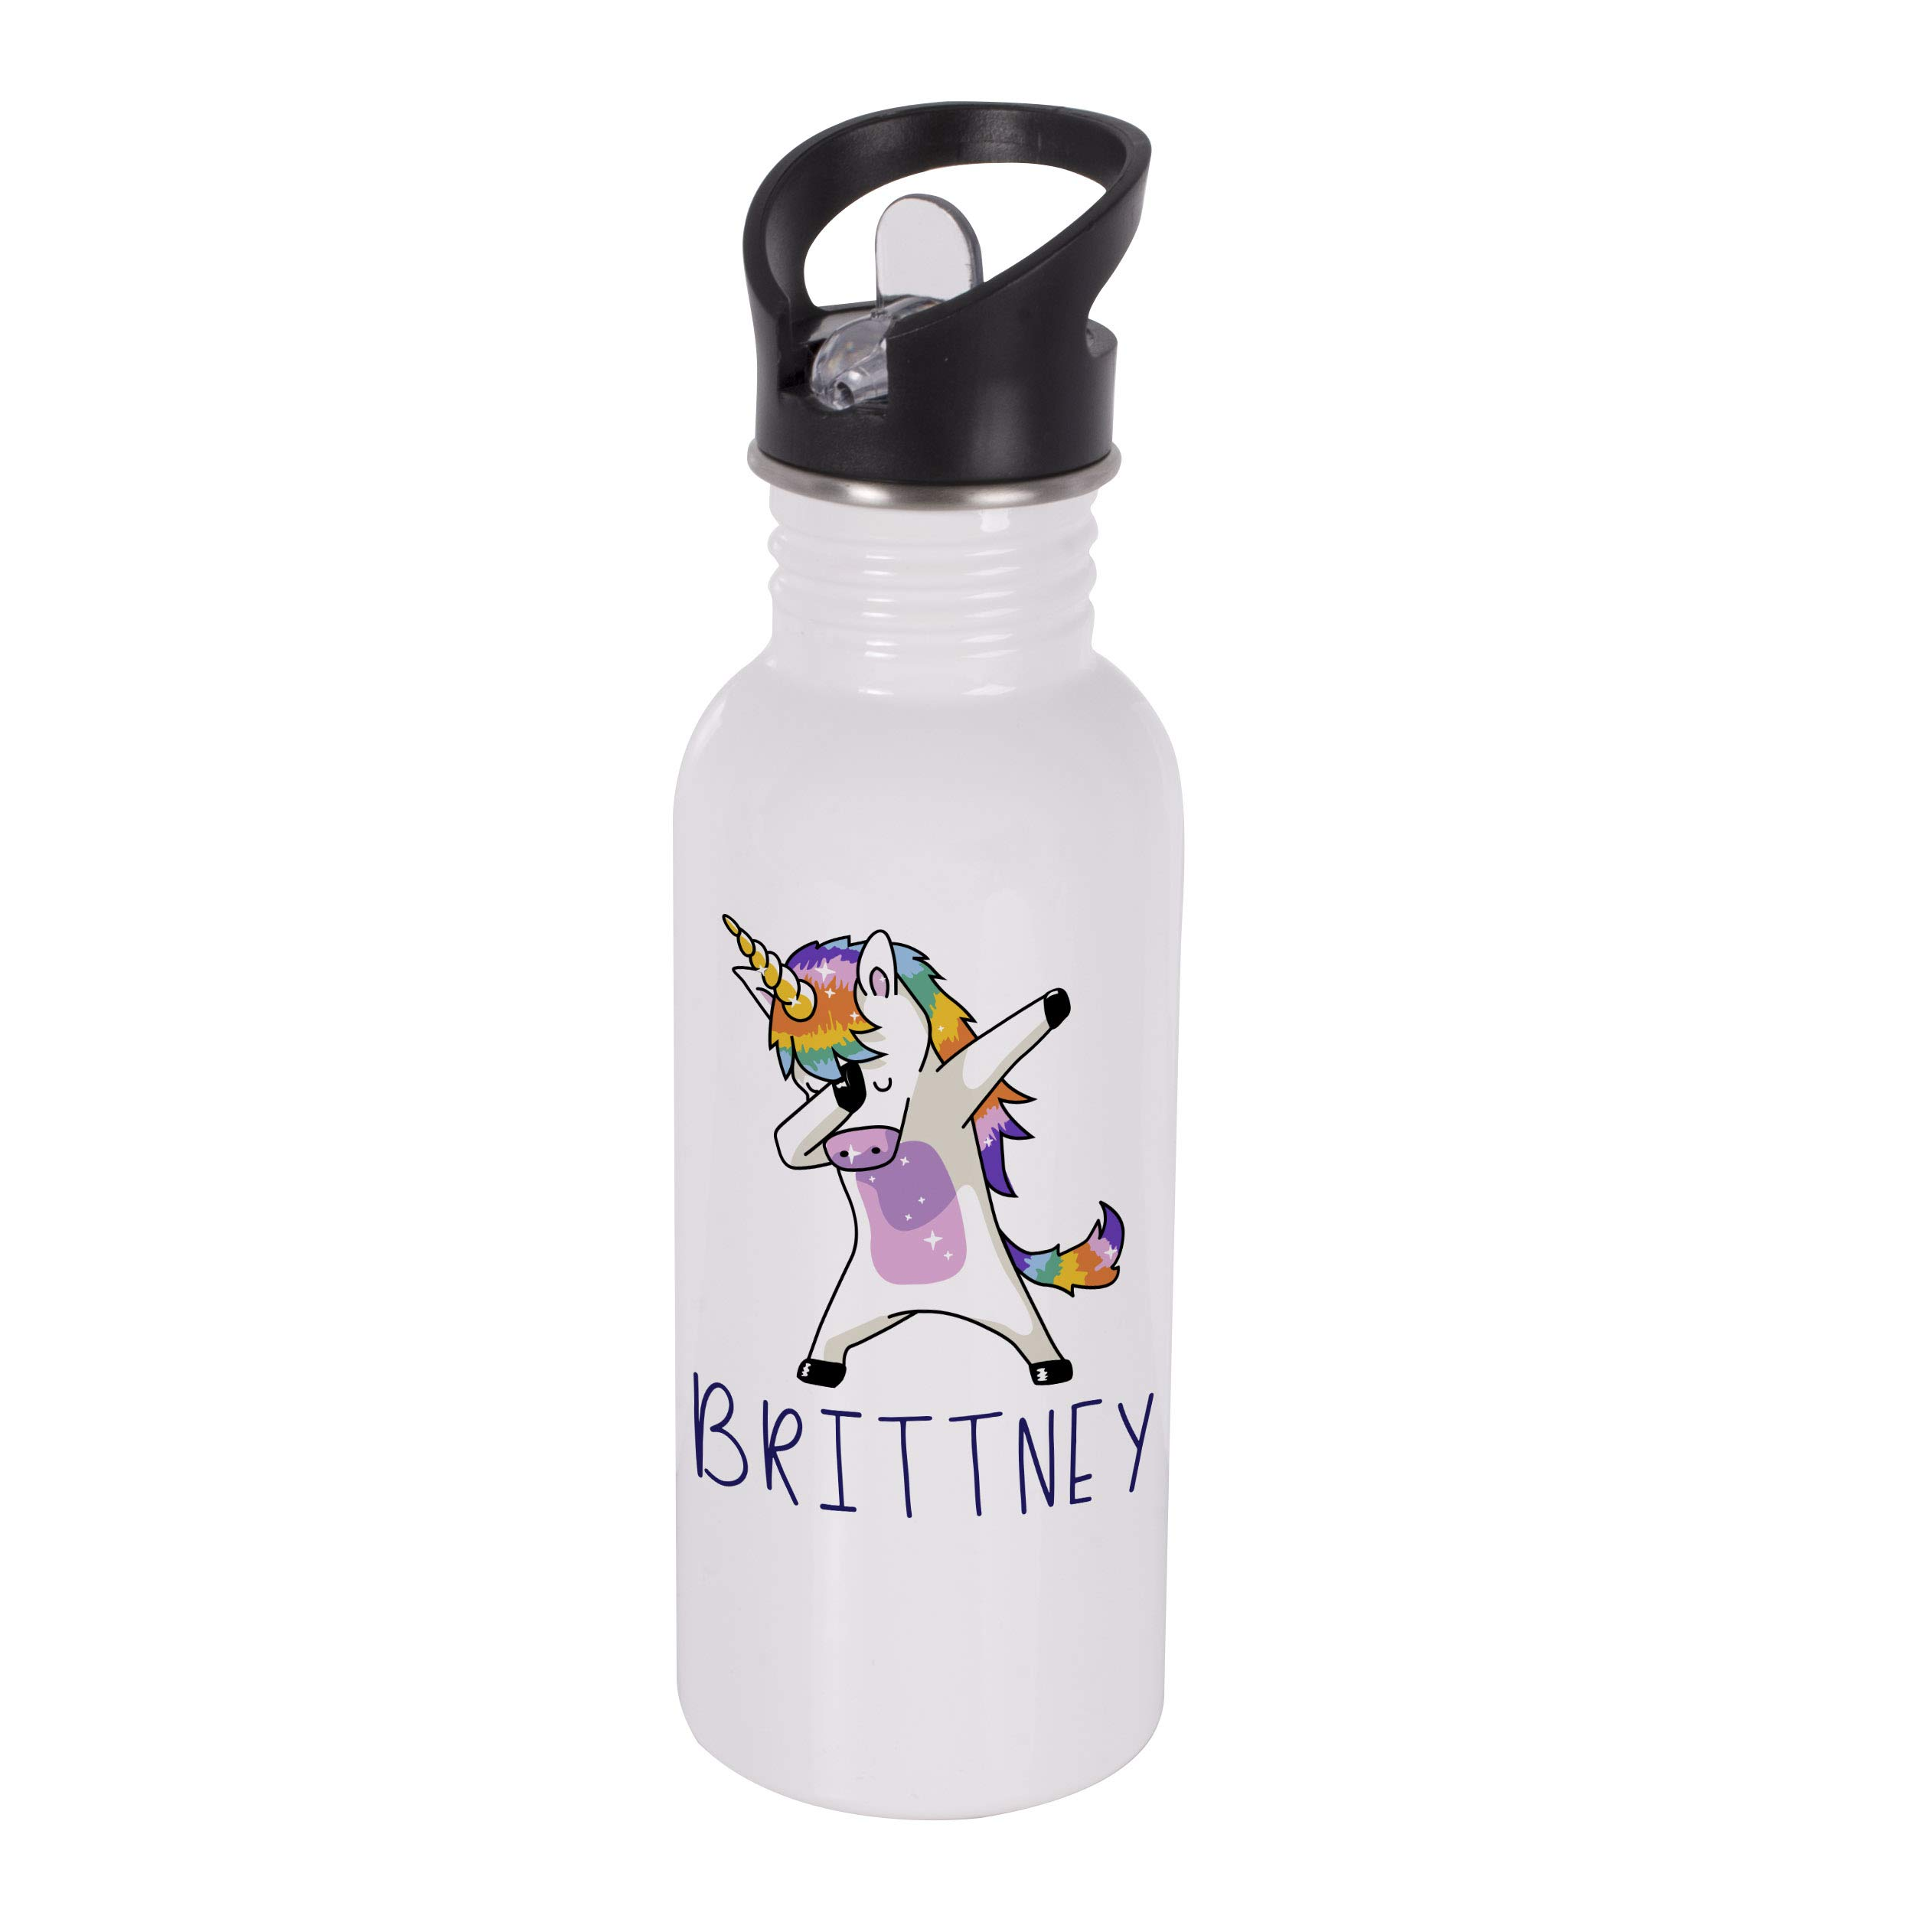 Personalized Gifts Dabbing Unicorn Coffee Mug - 16oz Stainless Steel Sport Water Bottle Tumbler with Lid and Straw -Birthday Gifts, Christmas Gifts, Mother's Day Gifts, Father's Day Gifts